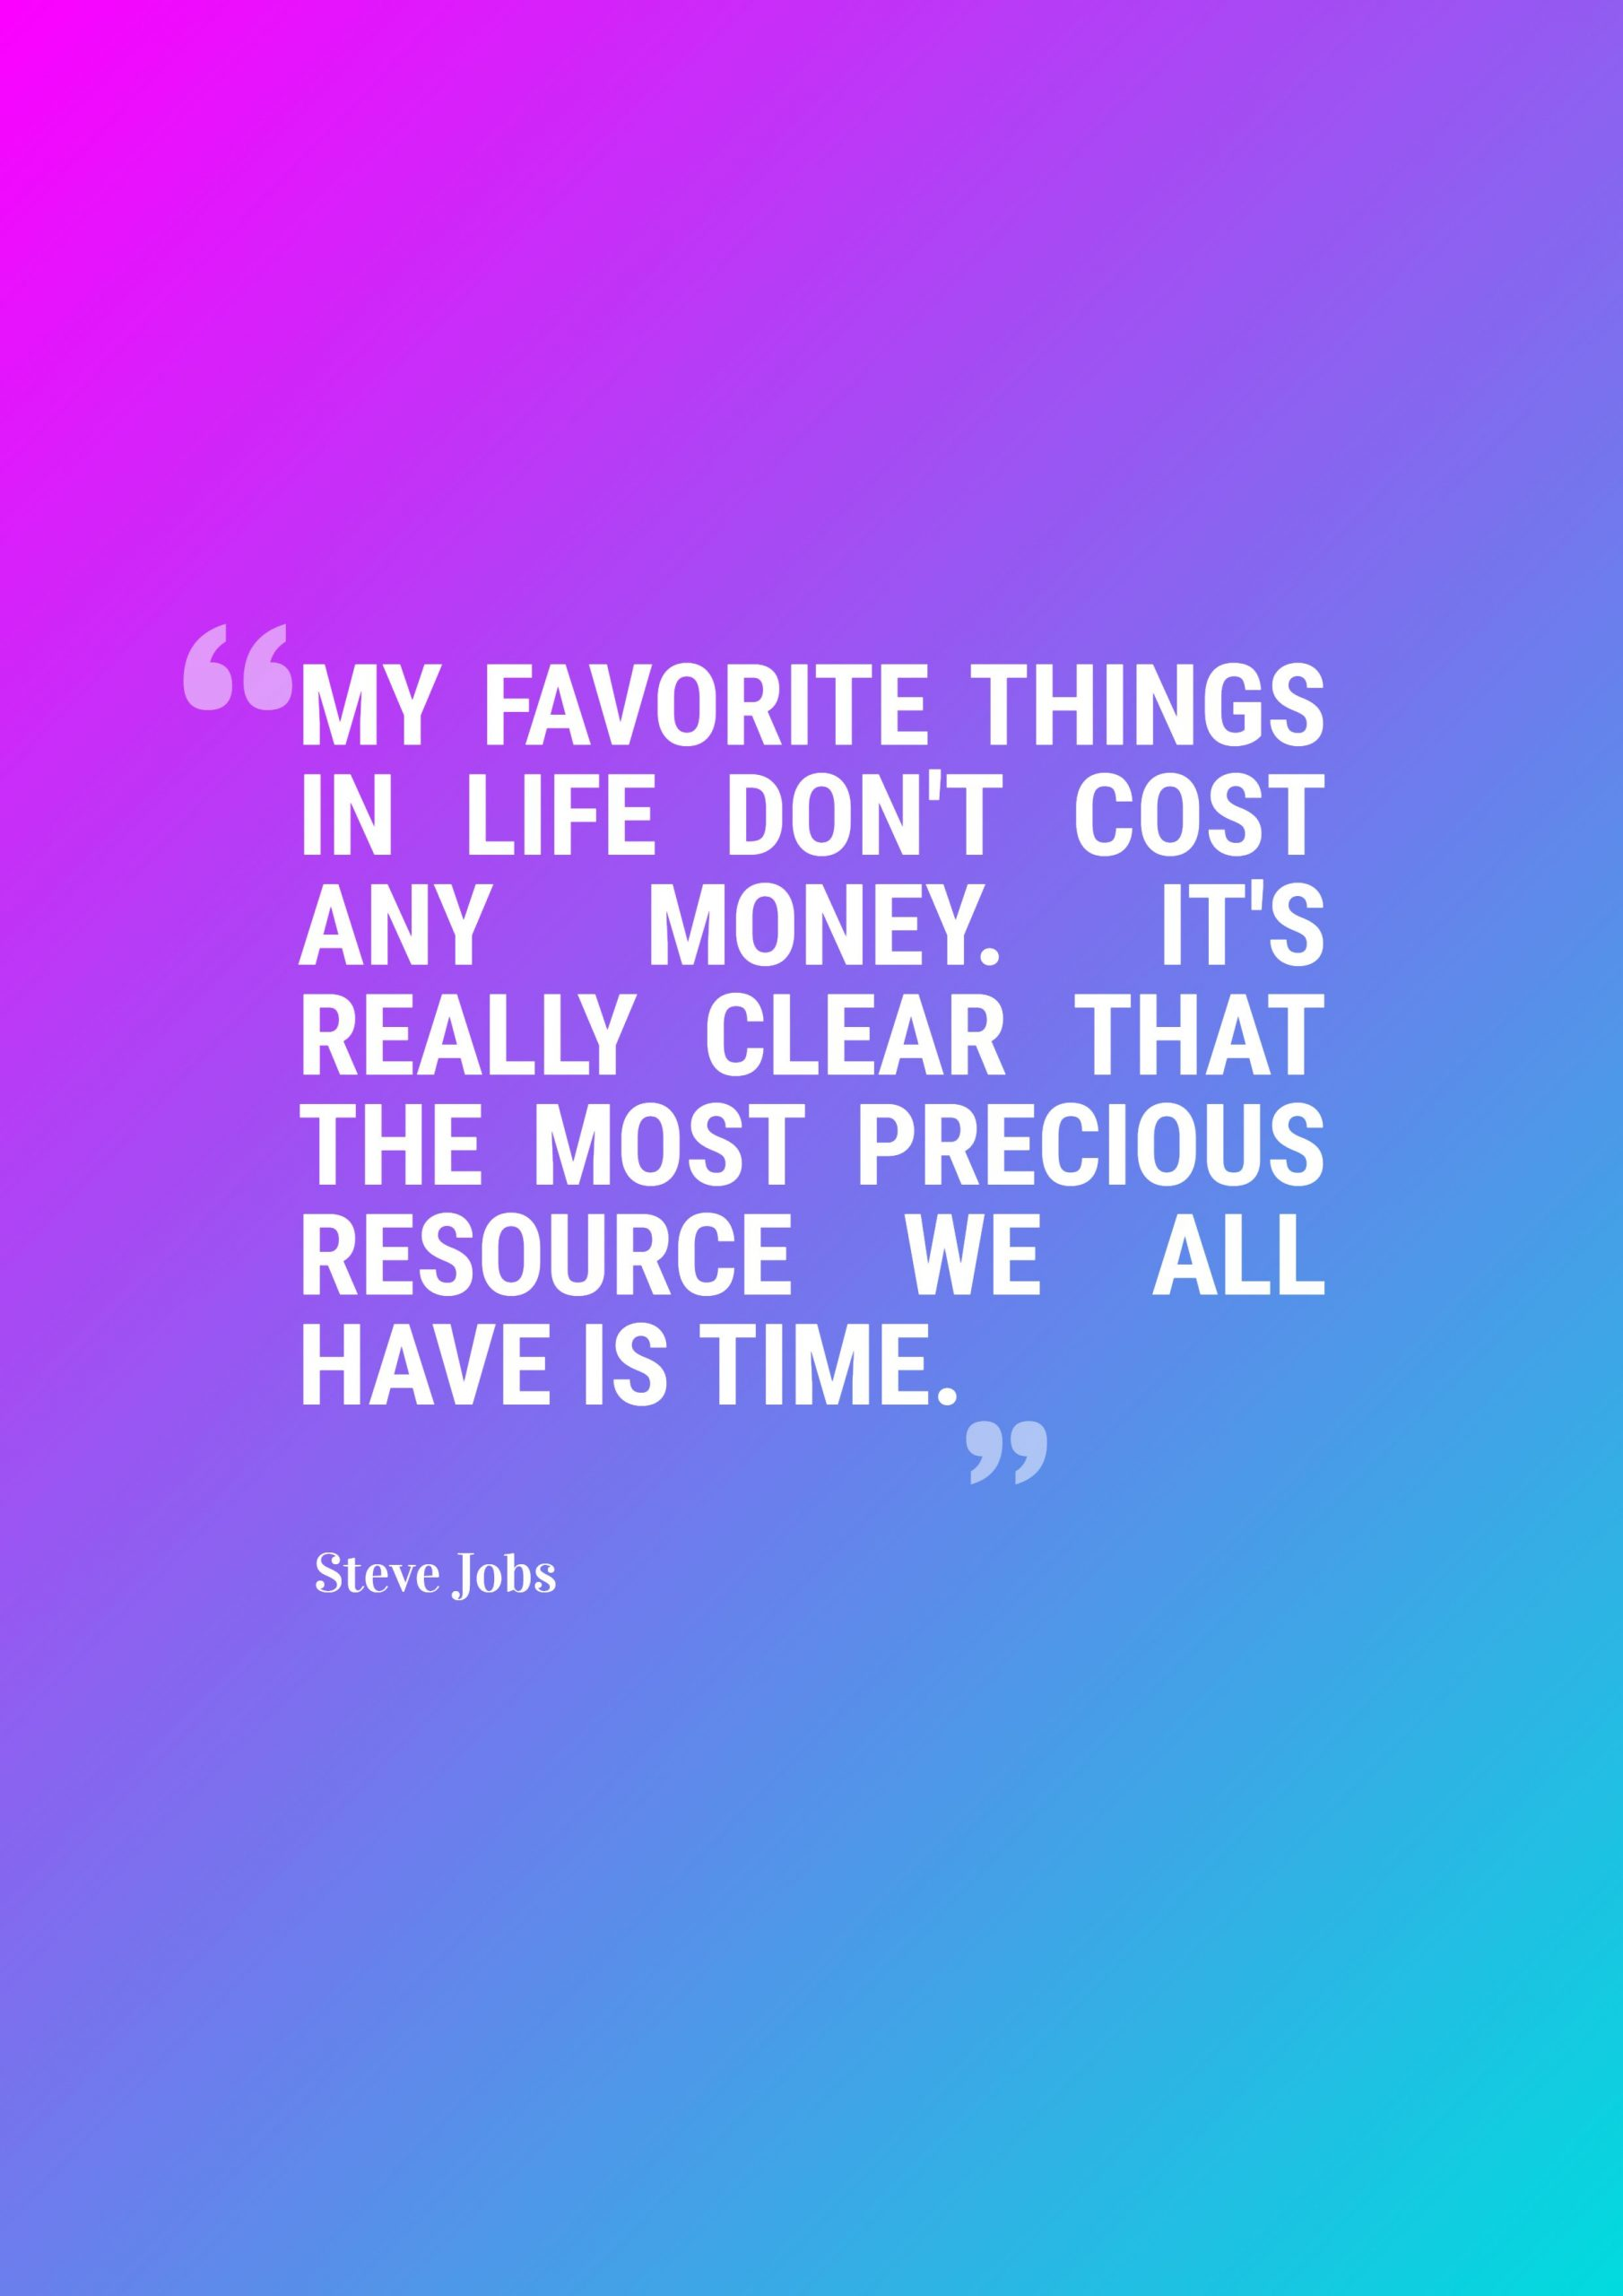 Quotes image of My favorite things in life don't cost any money. It's really clear that the most precious resource we all have is time.